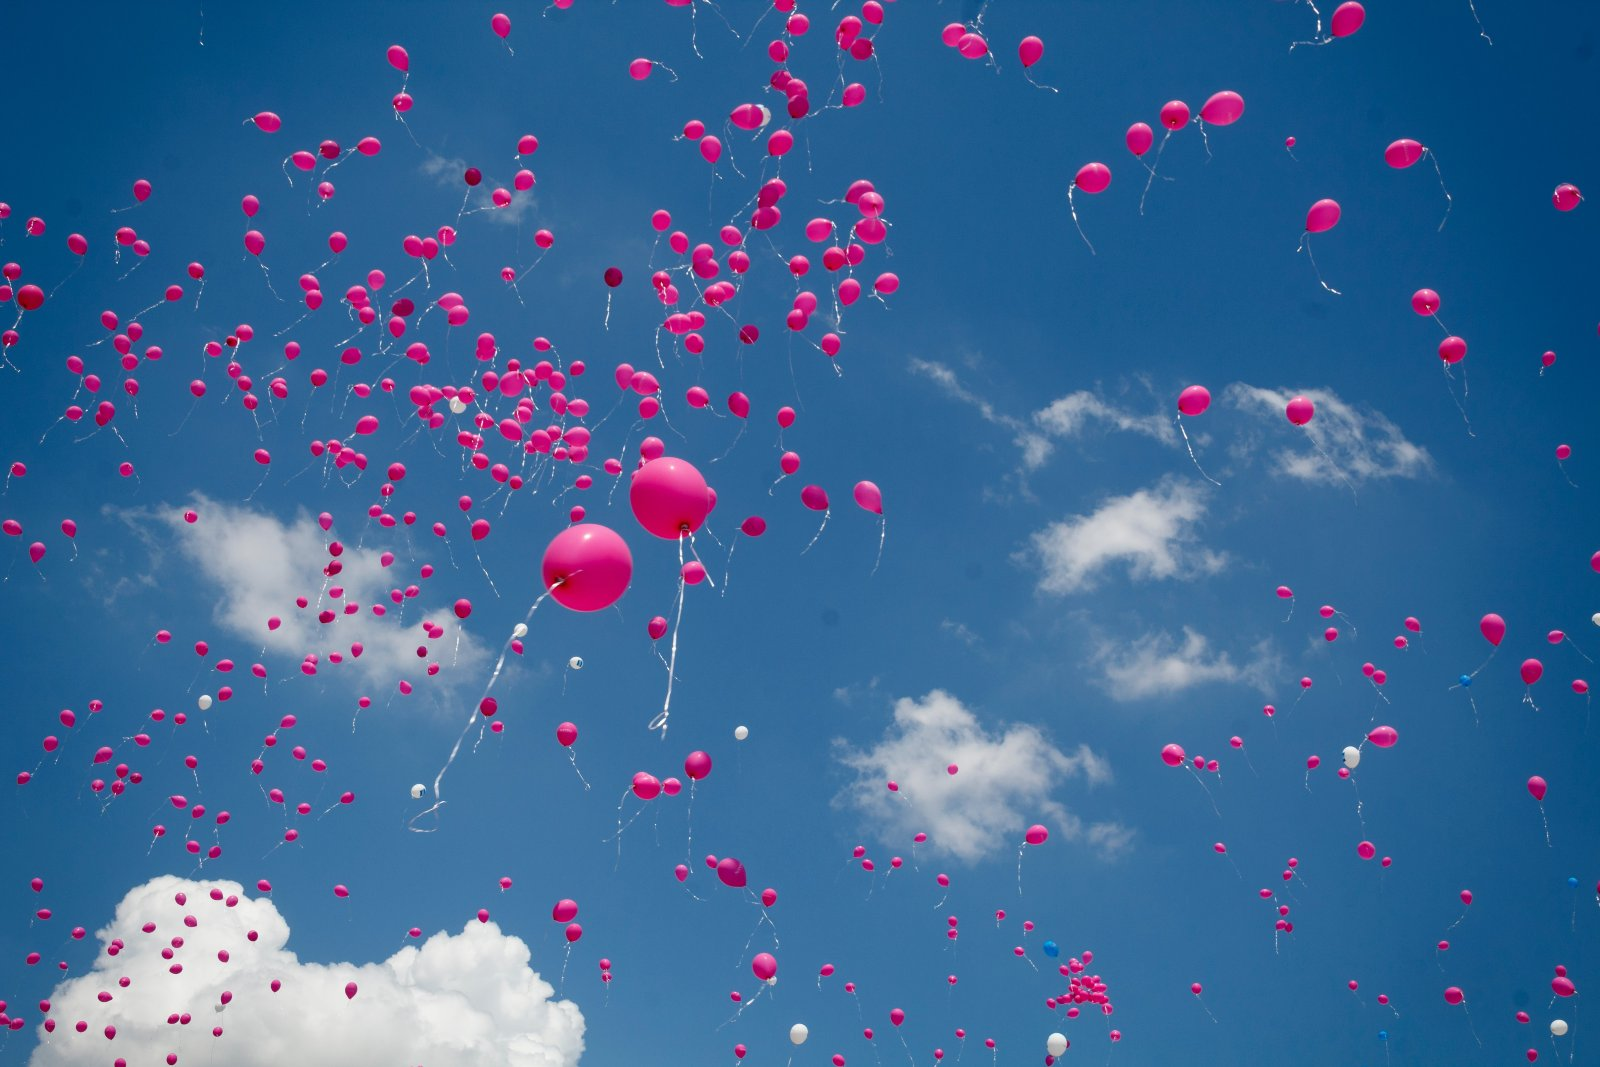 not biodegradable balloons released into the air